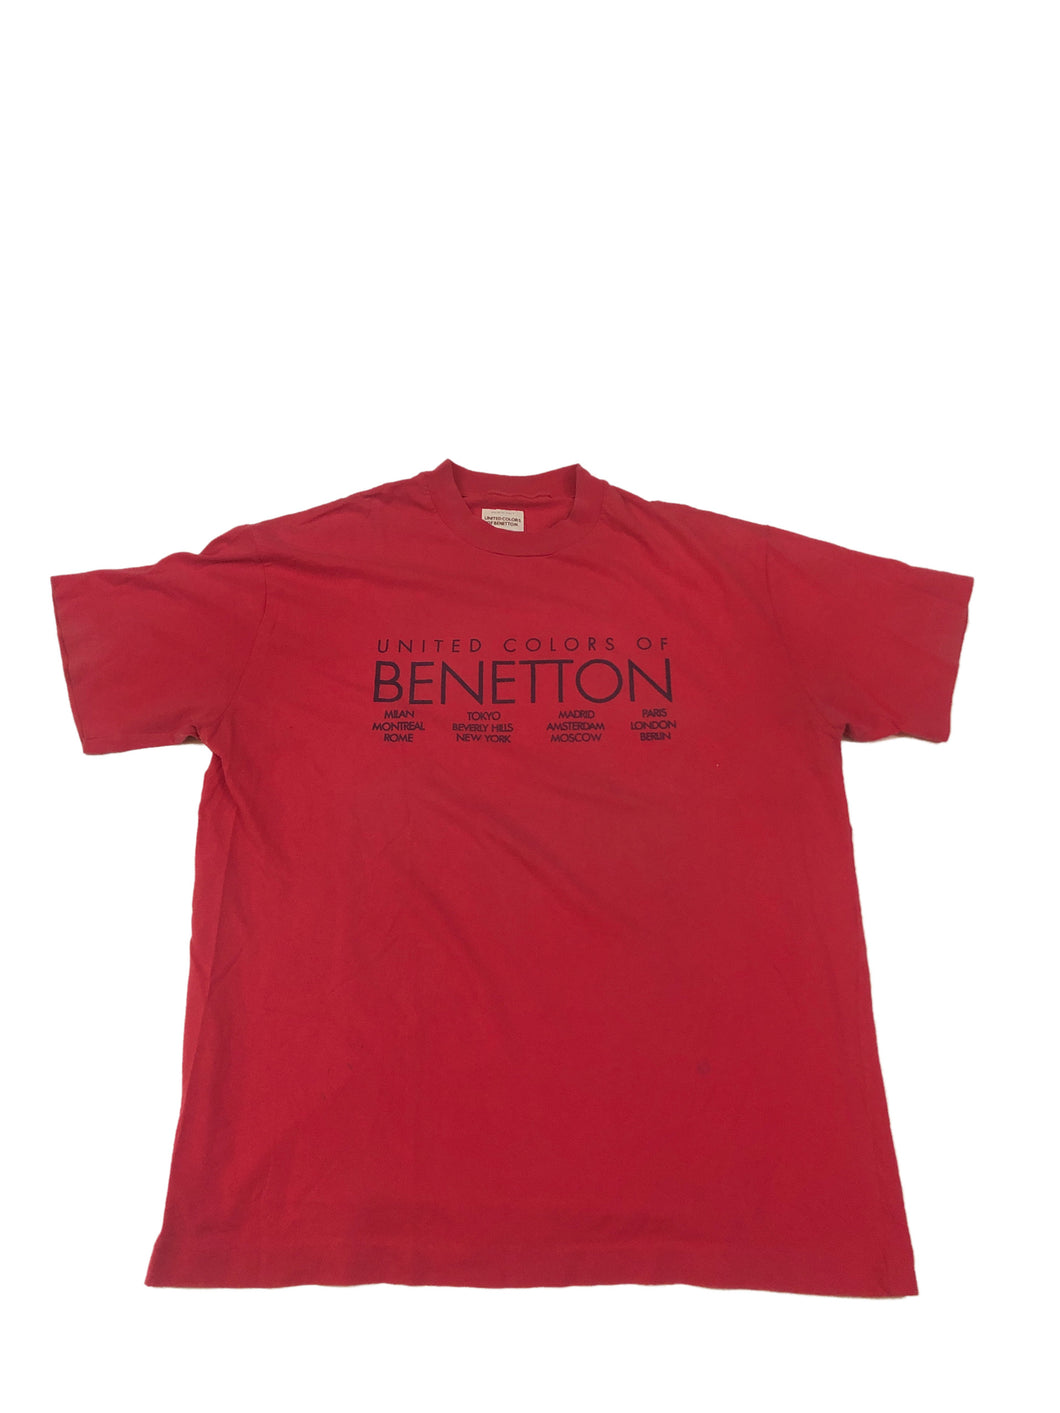 United Colors is Benetton Tee